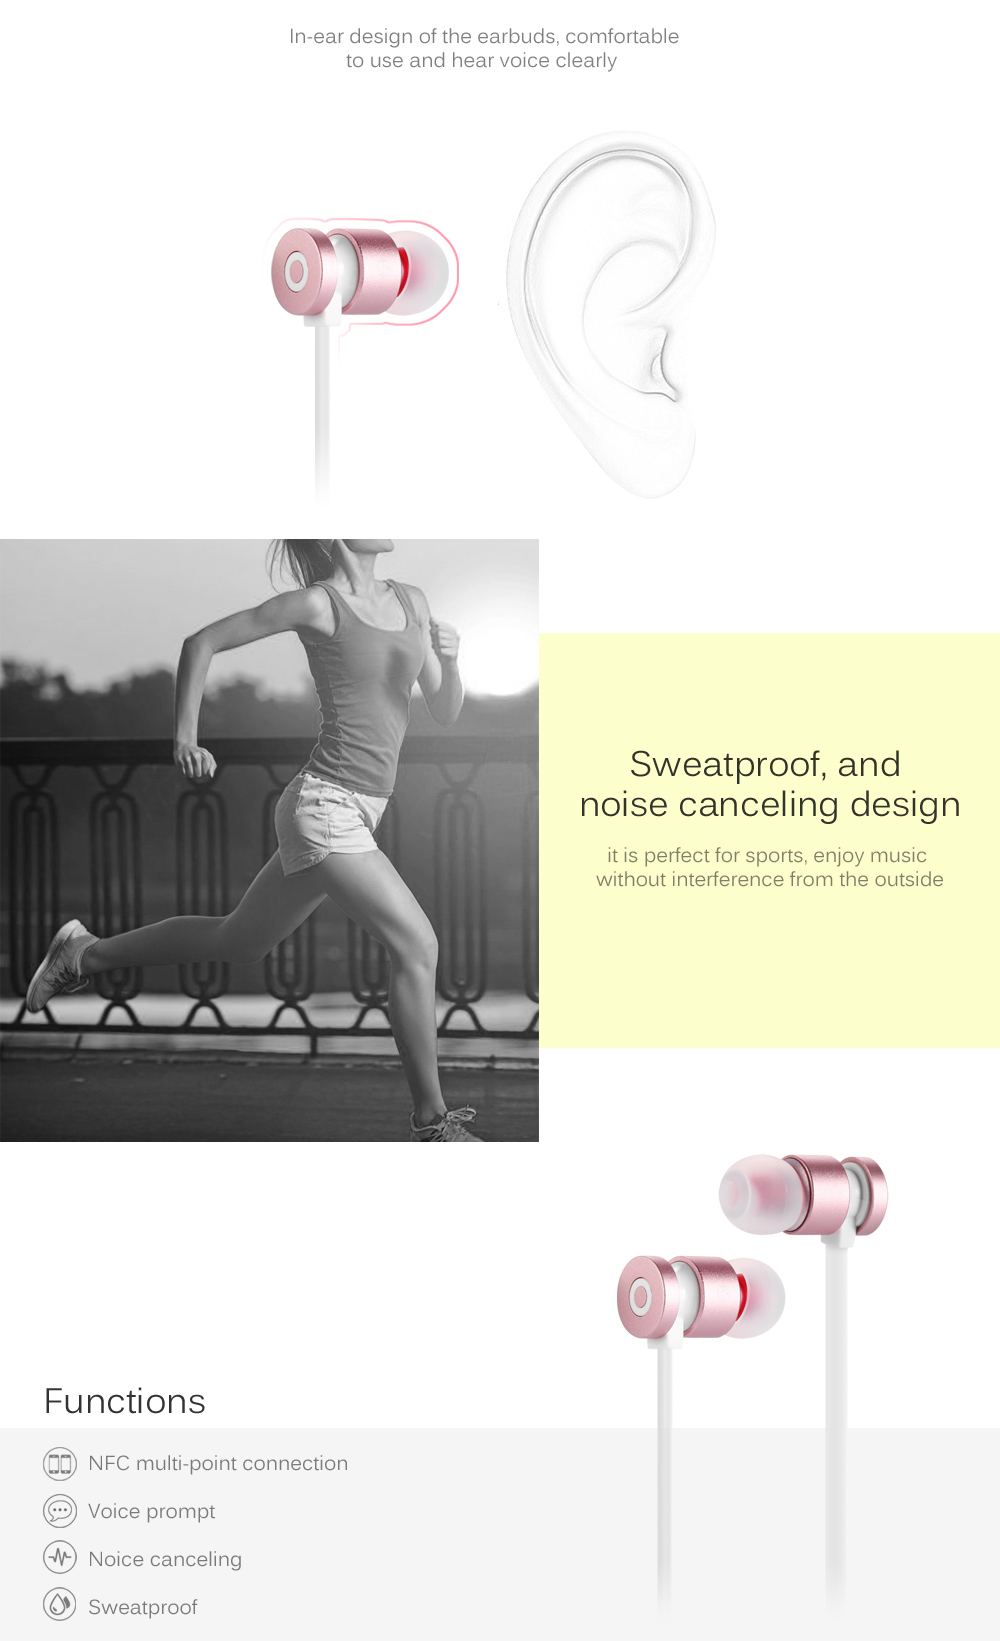 SQ - 811BL Bluetooth 4.1 In-ear Design Earbuds for Sports